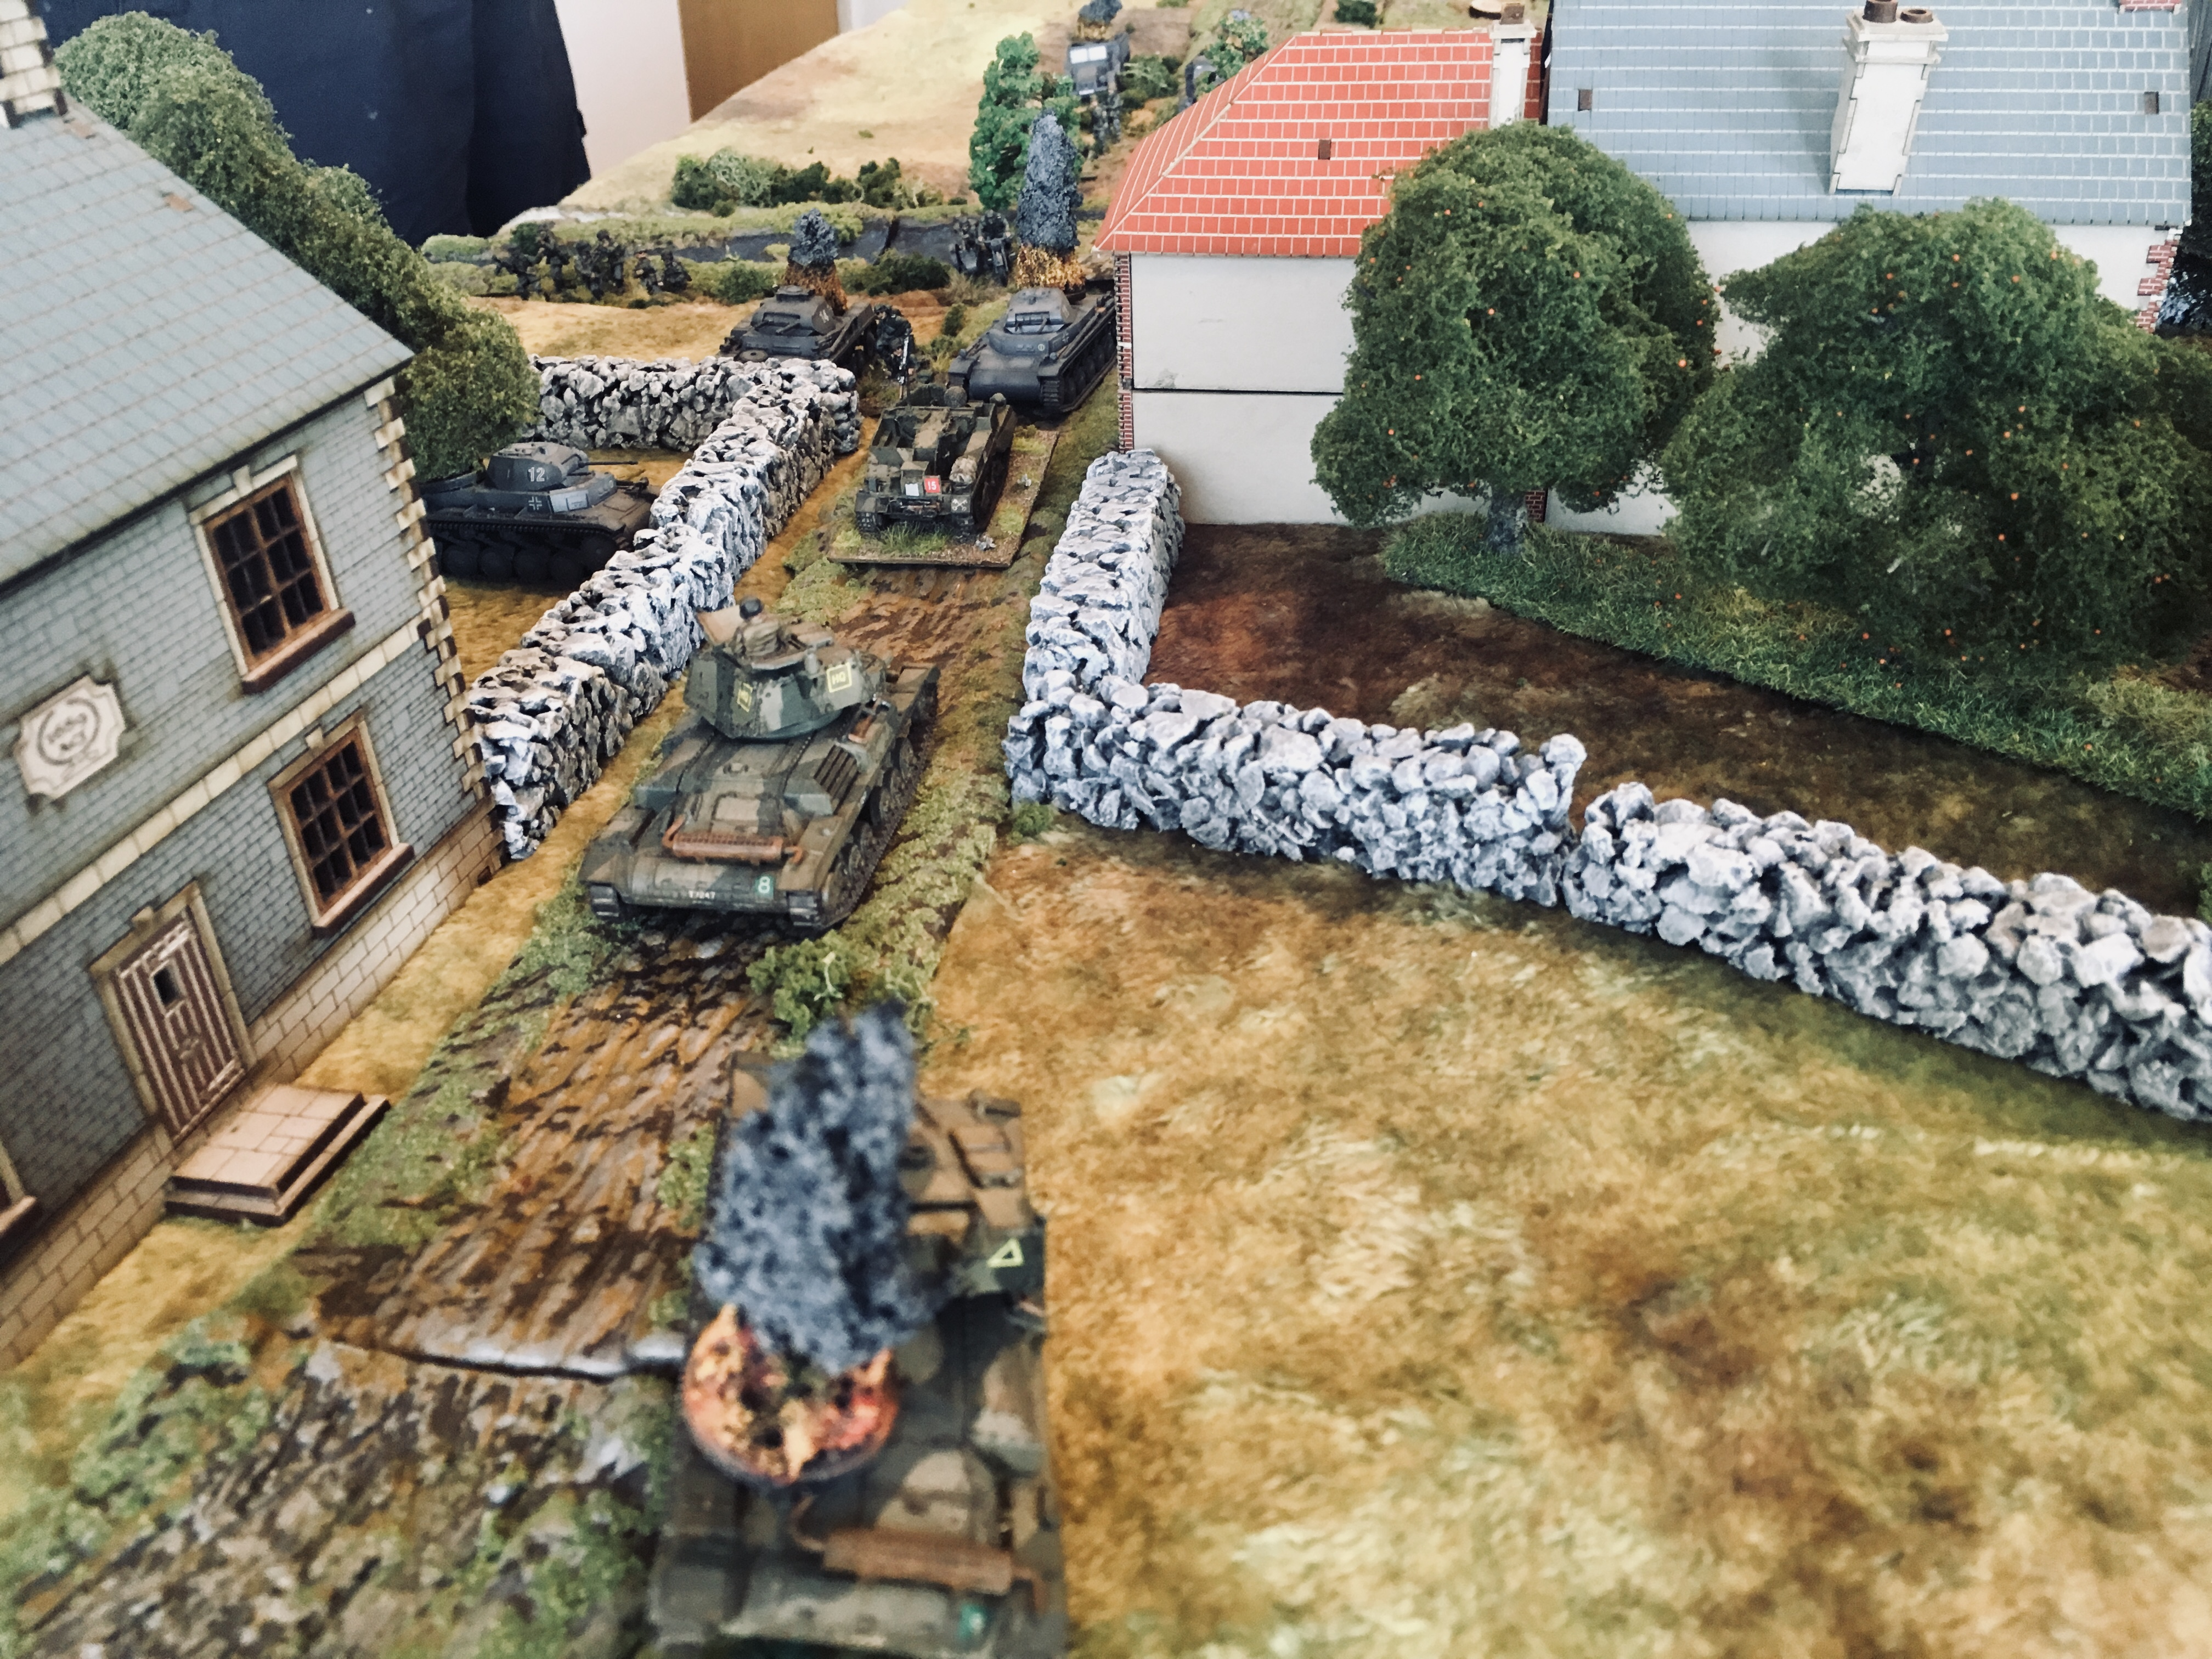 One more River to.....Blitzkrieg AAR AA4BABE6-C948-499E-A036-556F7F8D6879